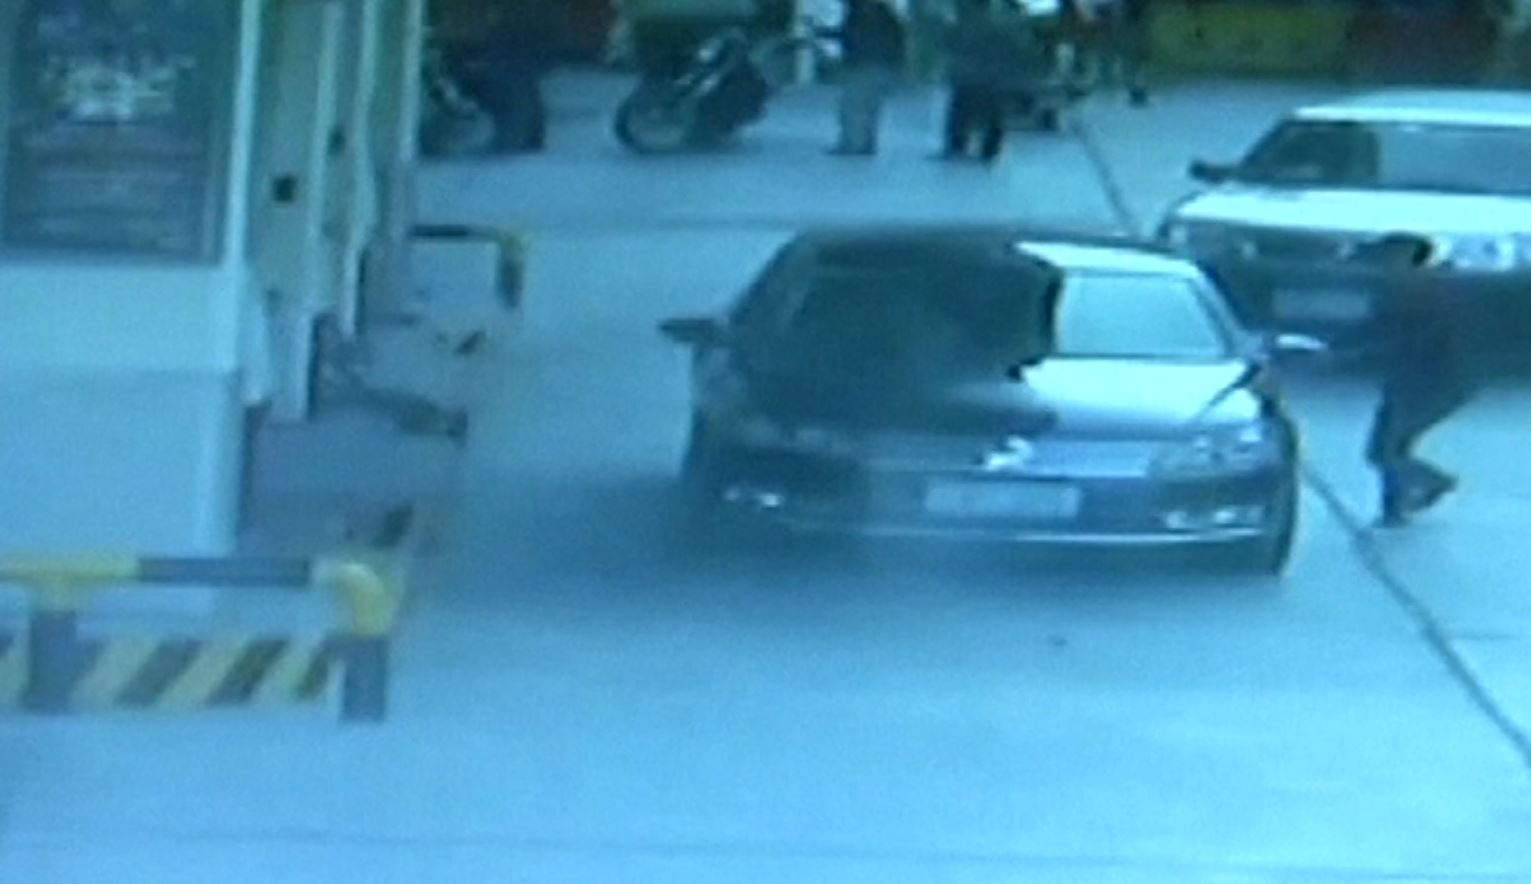 Gone in 60 Seconds: Car Stolen From Petrol Station in Less Than a Minute